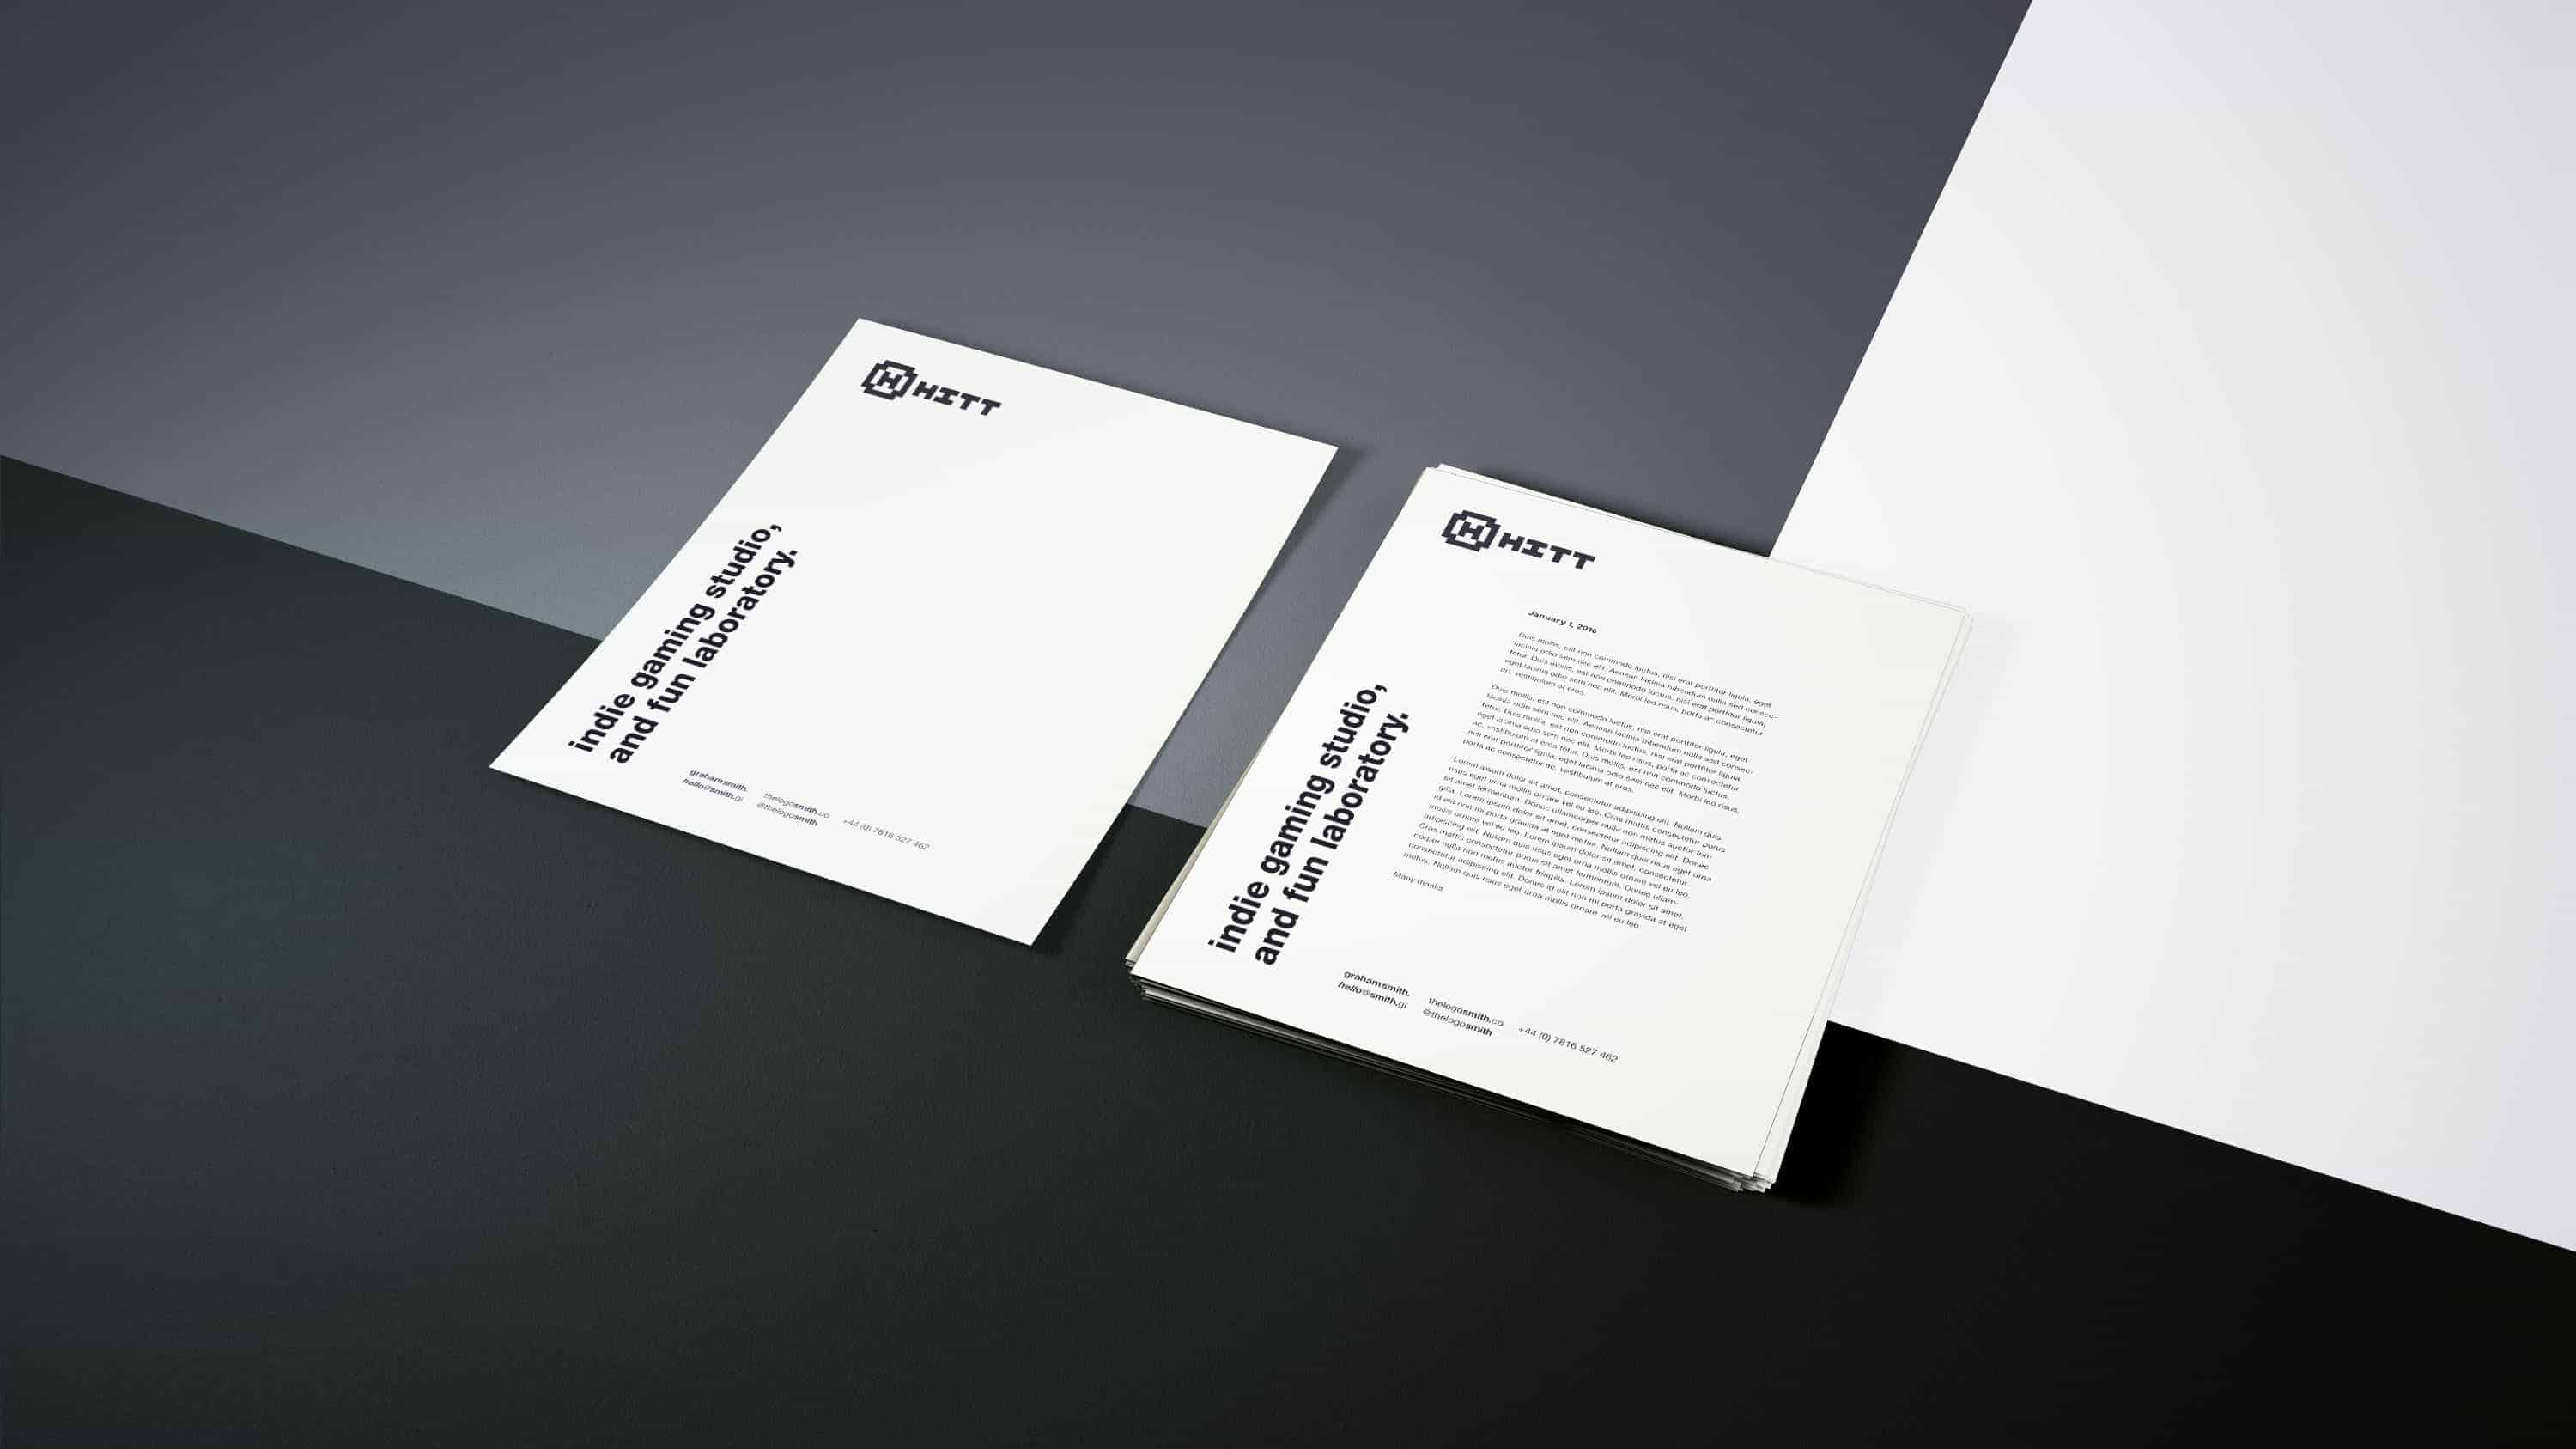 HITT gaming studio logo brand identity stationery design 3